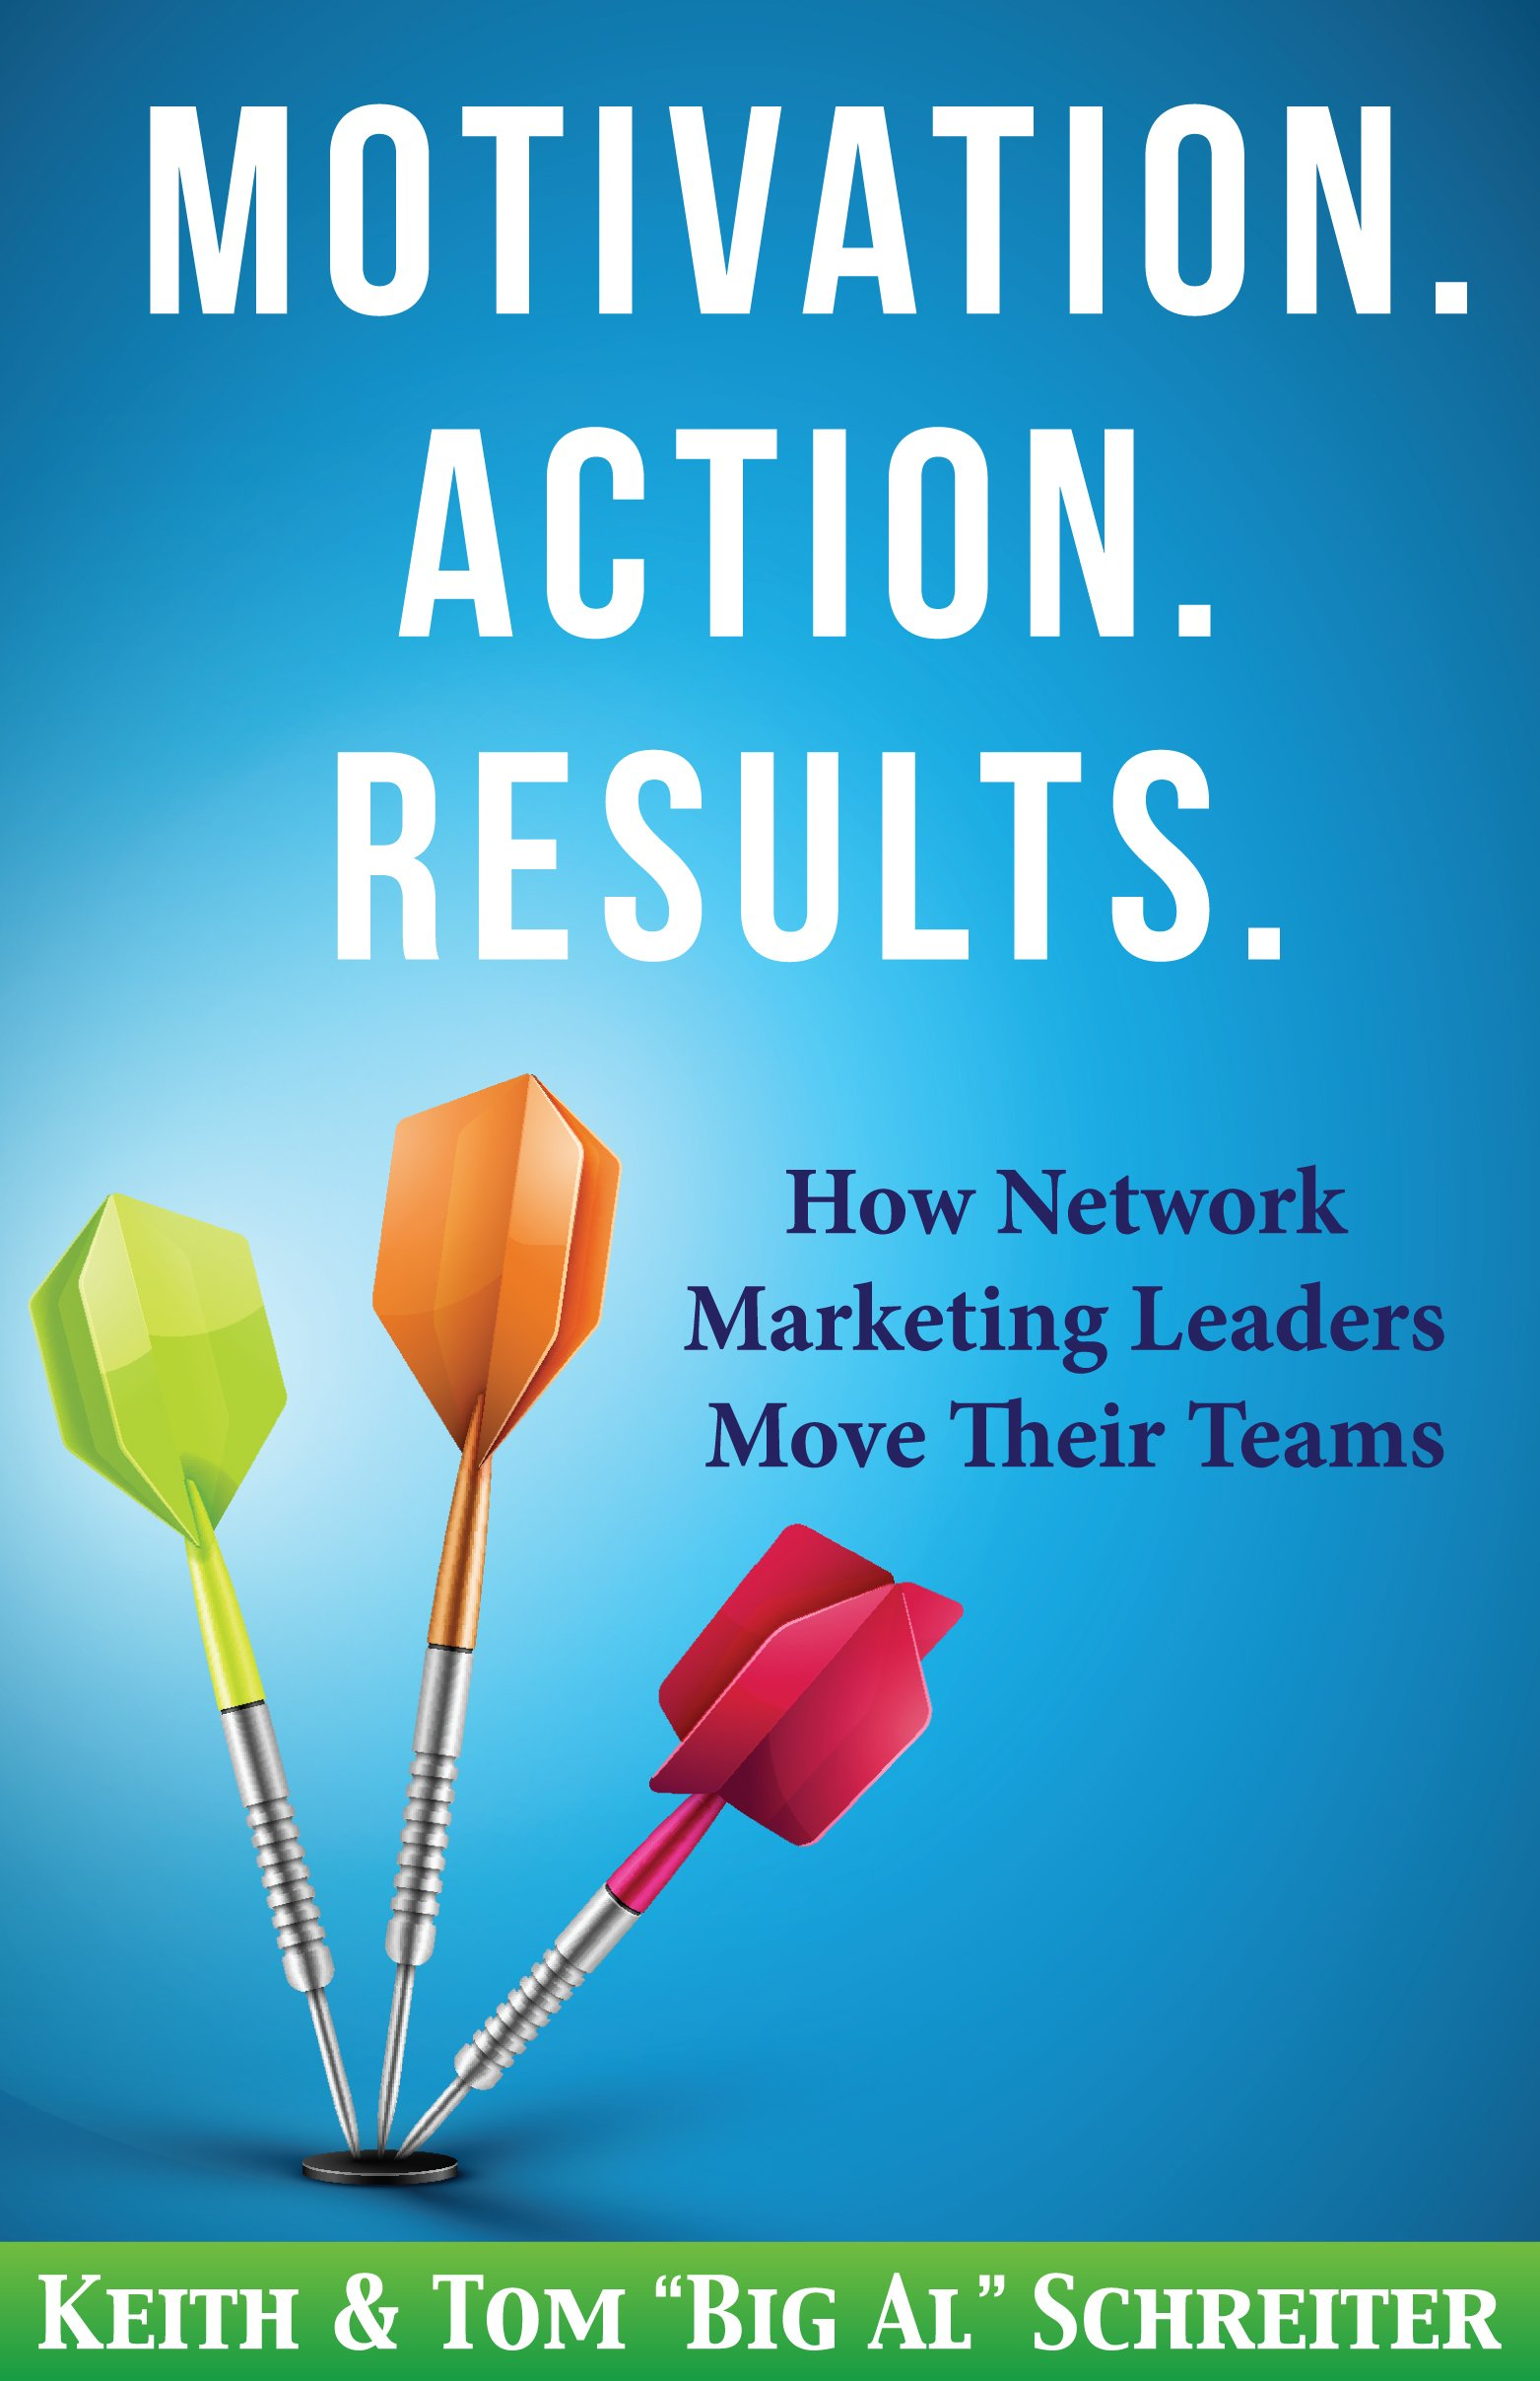 Motivation. Action. Results.: How Network Marketing Leaders Move Their Teams (Network Marketing Leadership Series Book 3)